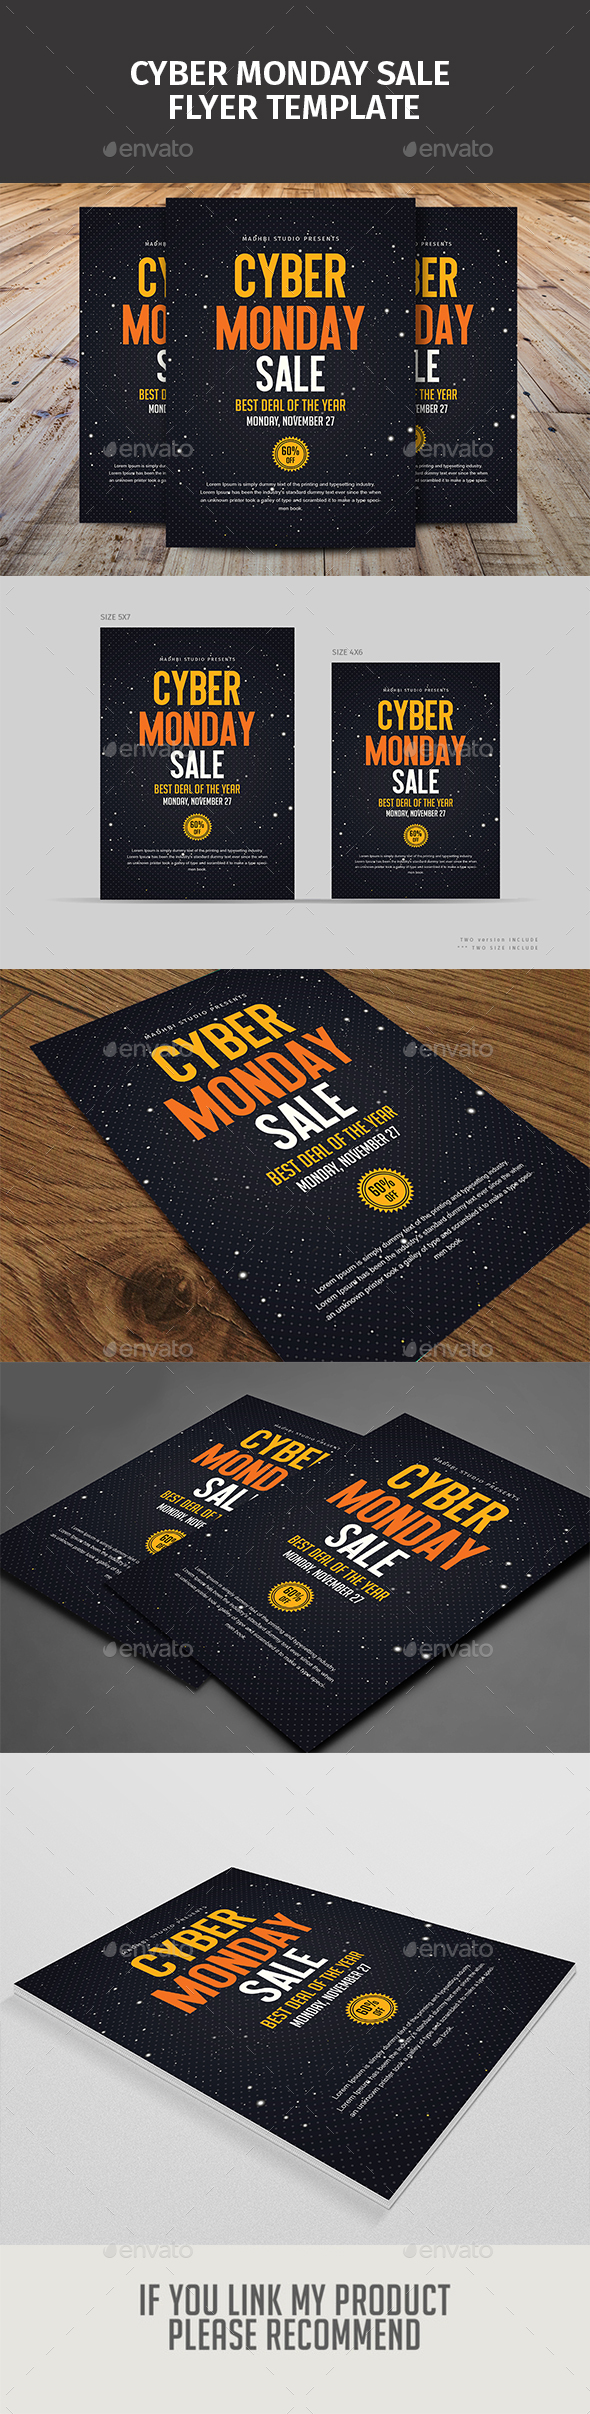 GraphicRiver Cyber Monday Sale Flyer Template 20980147